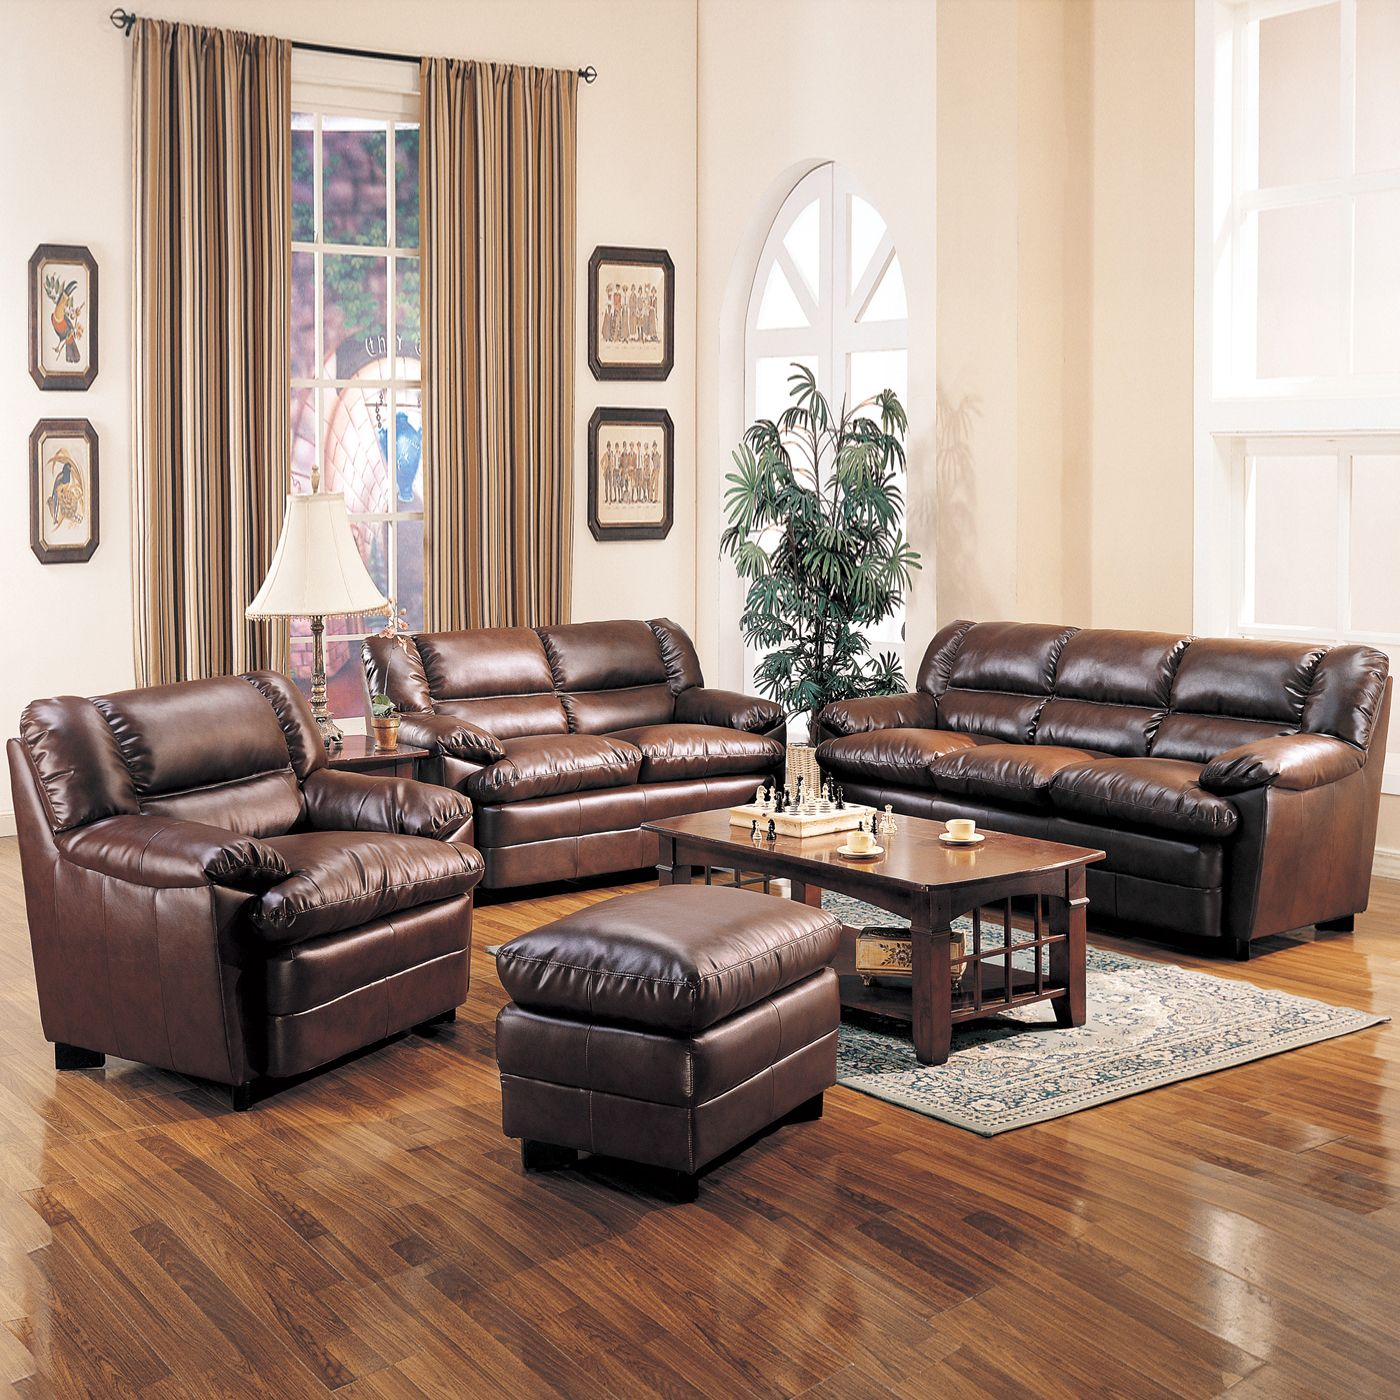 Cream Living Room Sets: Vintage Living Room Set Up With Dark Brown ...